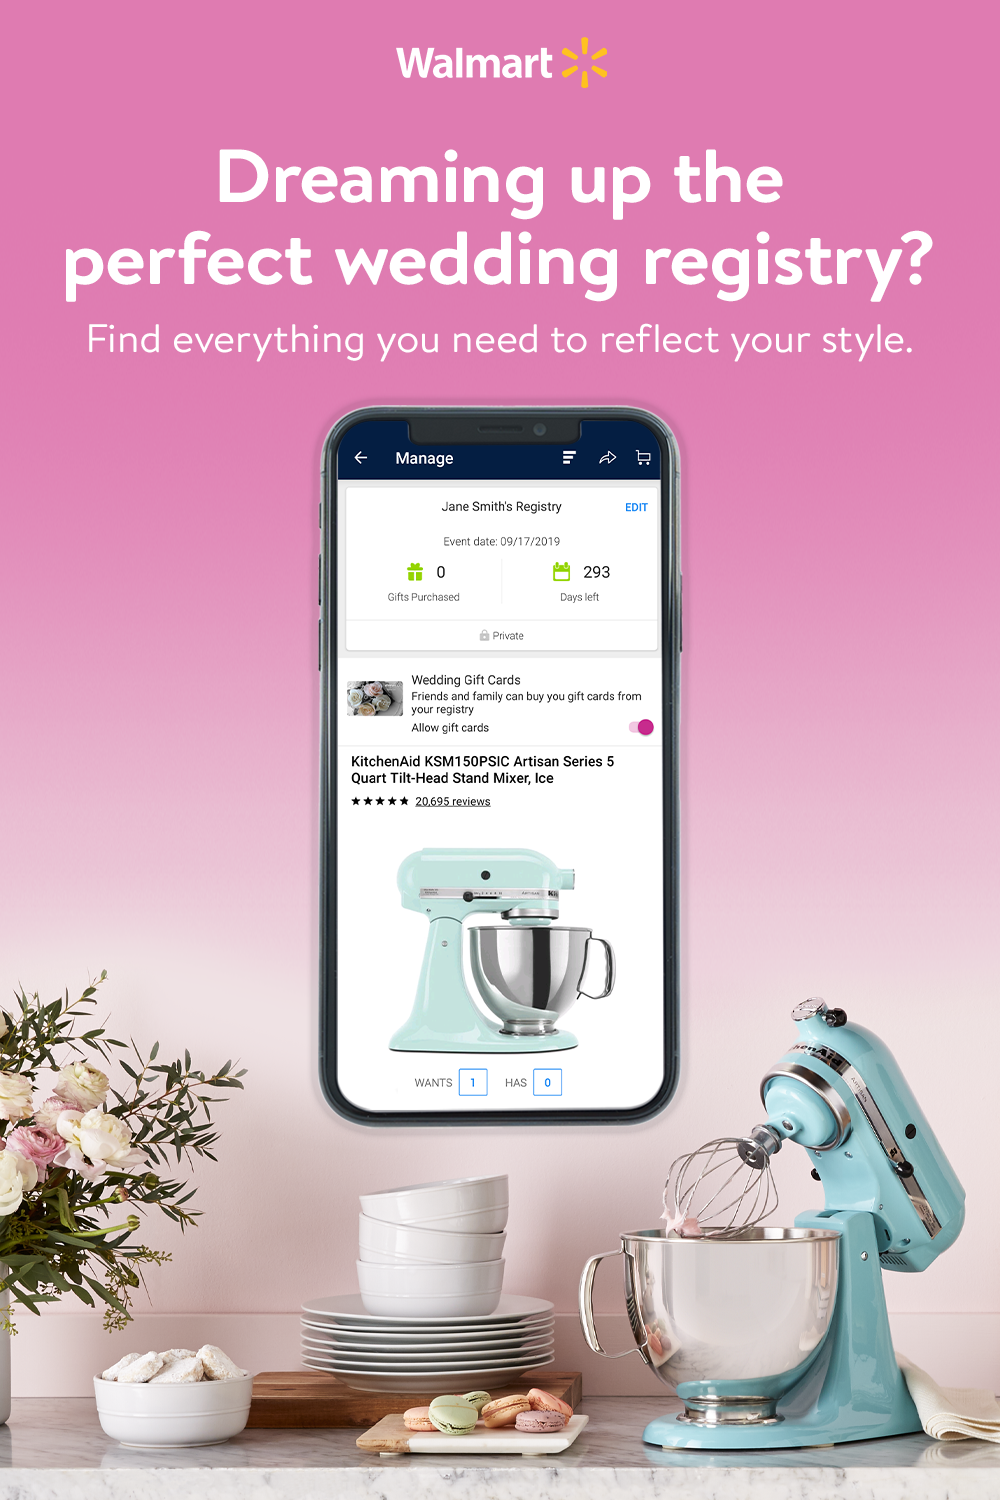 Weddings Are All About The Details When You Re Ready To Build A Registry We Re Here To Help Customized Photo Gifts Perfect Wedding Registry Gifts For Family